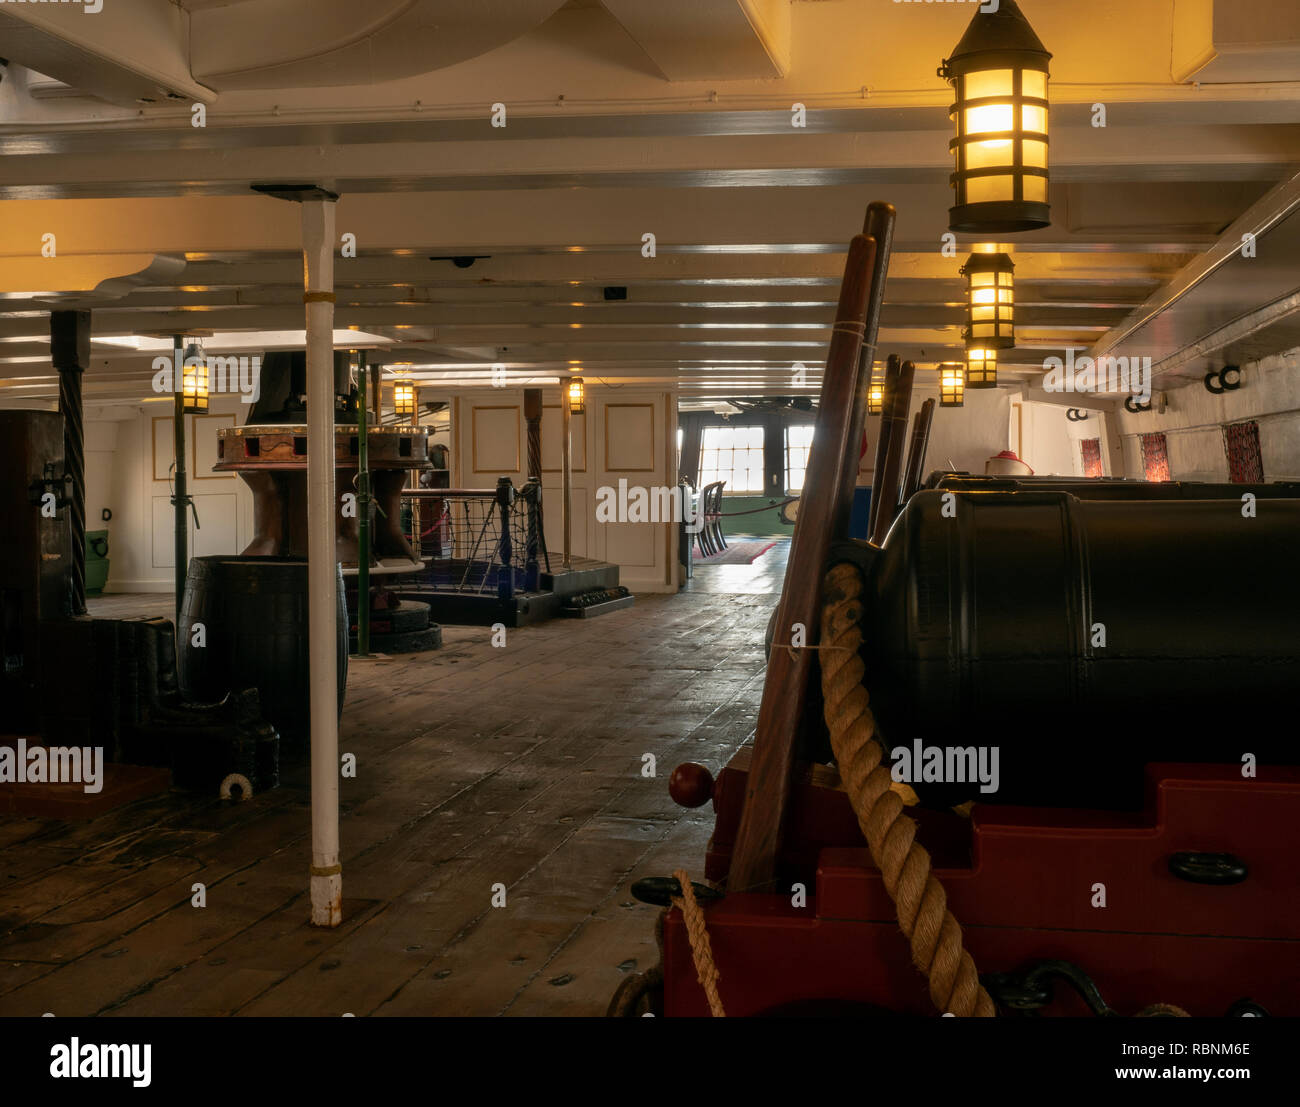 HMS Trincomalee, National Museum of The Royal Navy, Hartlepool, County Durham, England, UK - view of the lower deck. - Stock Image